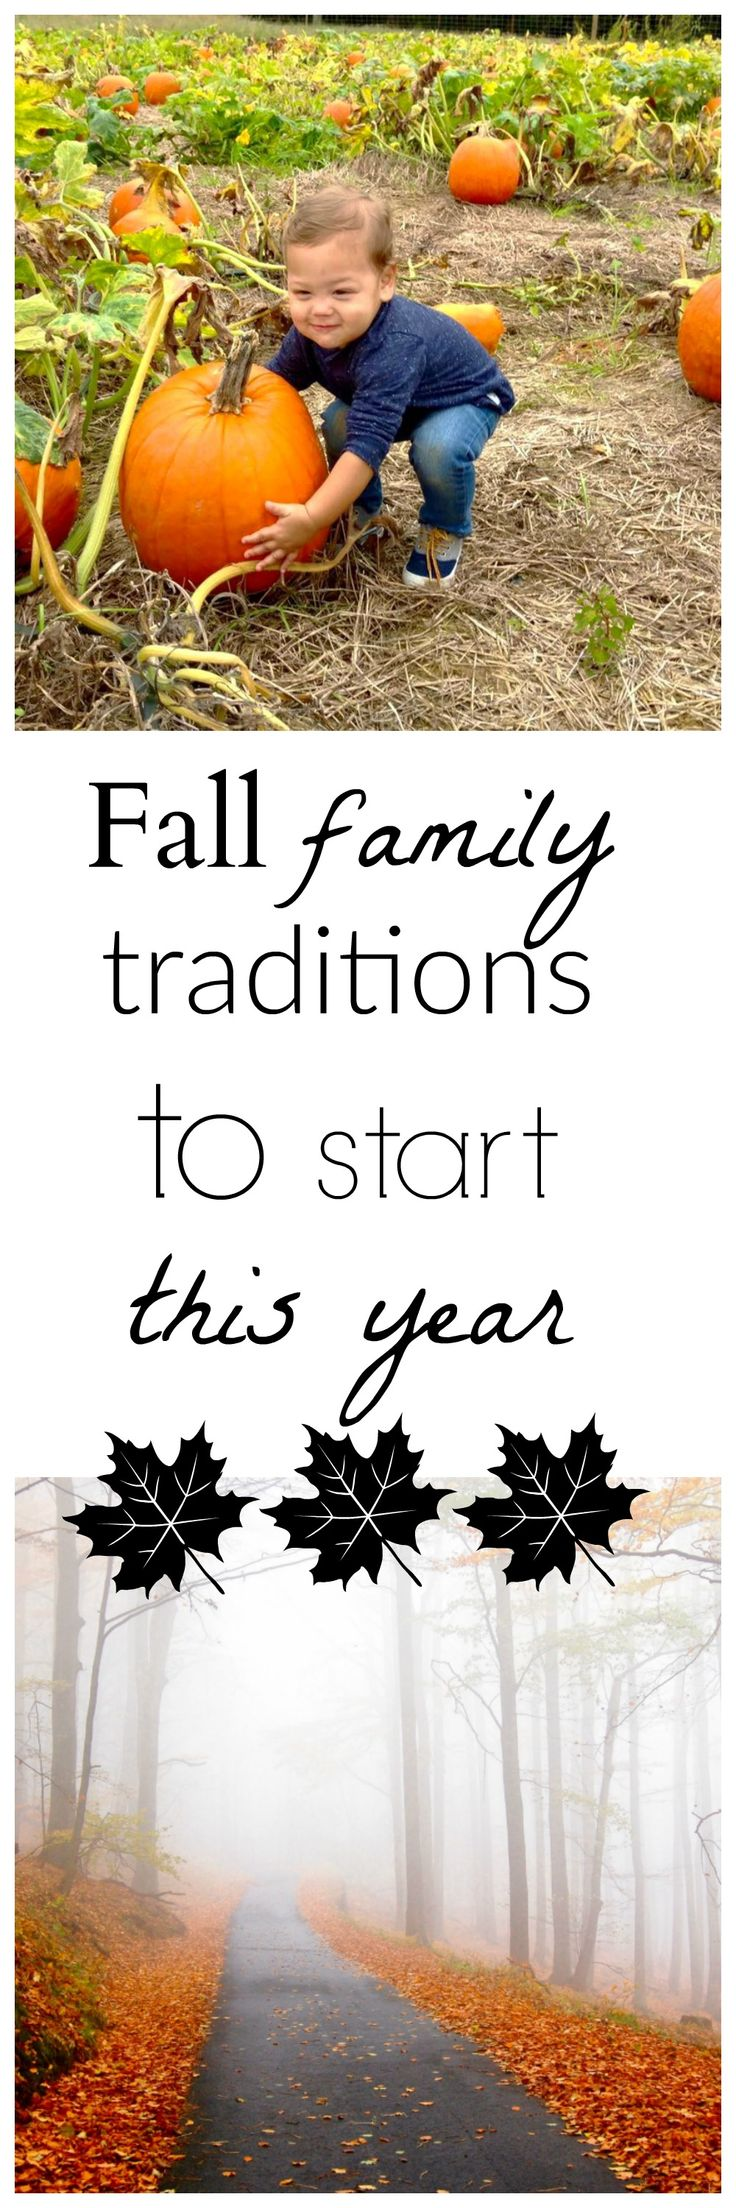 Fall Family Bucket List. Fall family traditions to start this year. Check out our fall bucket list!